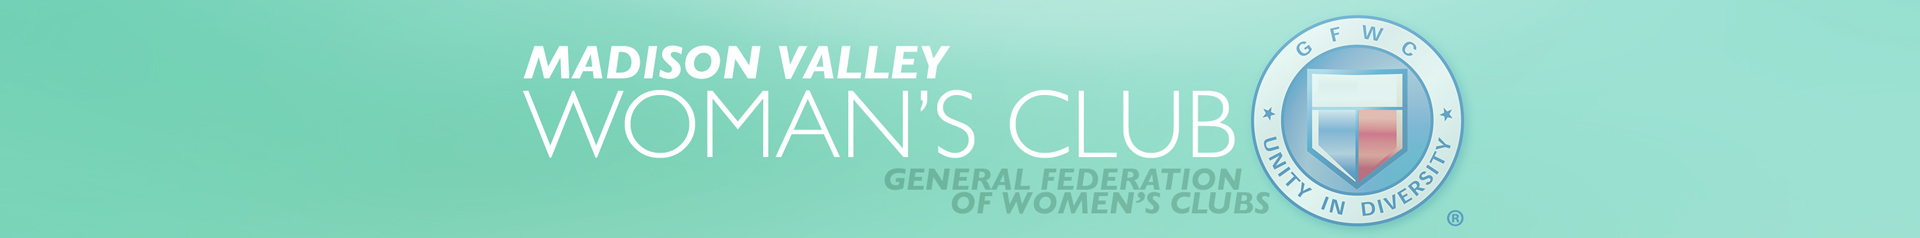 Madison Valley Woman's Club